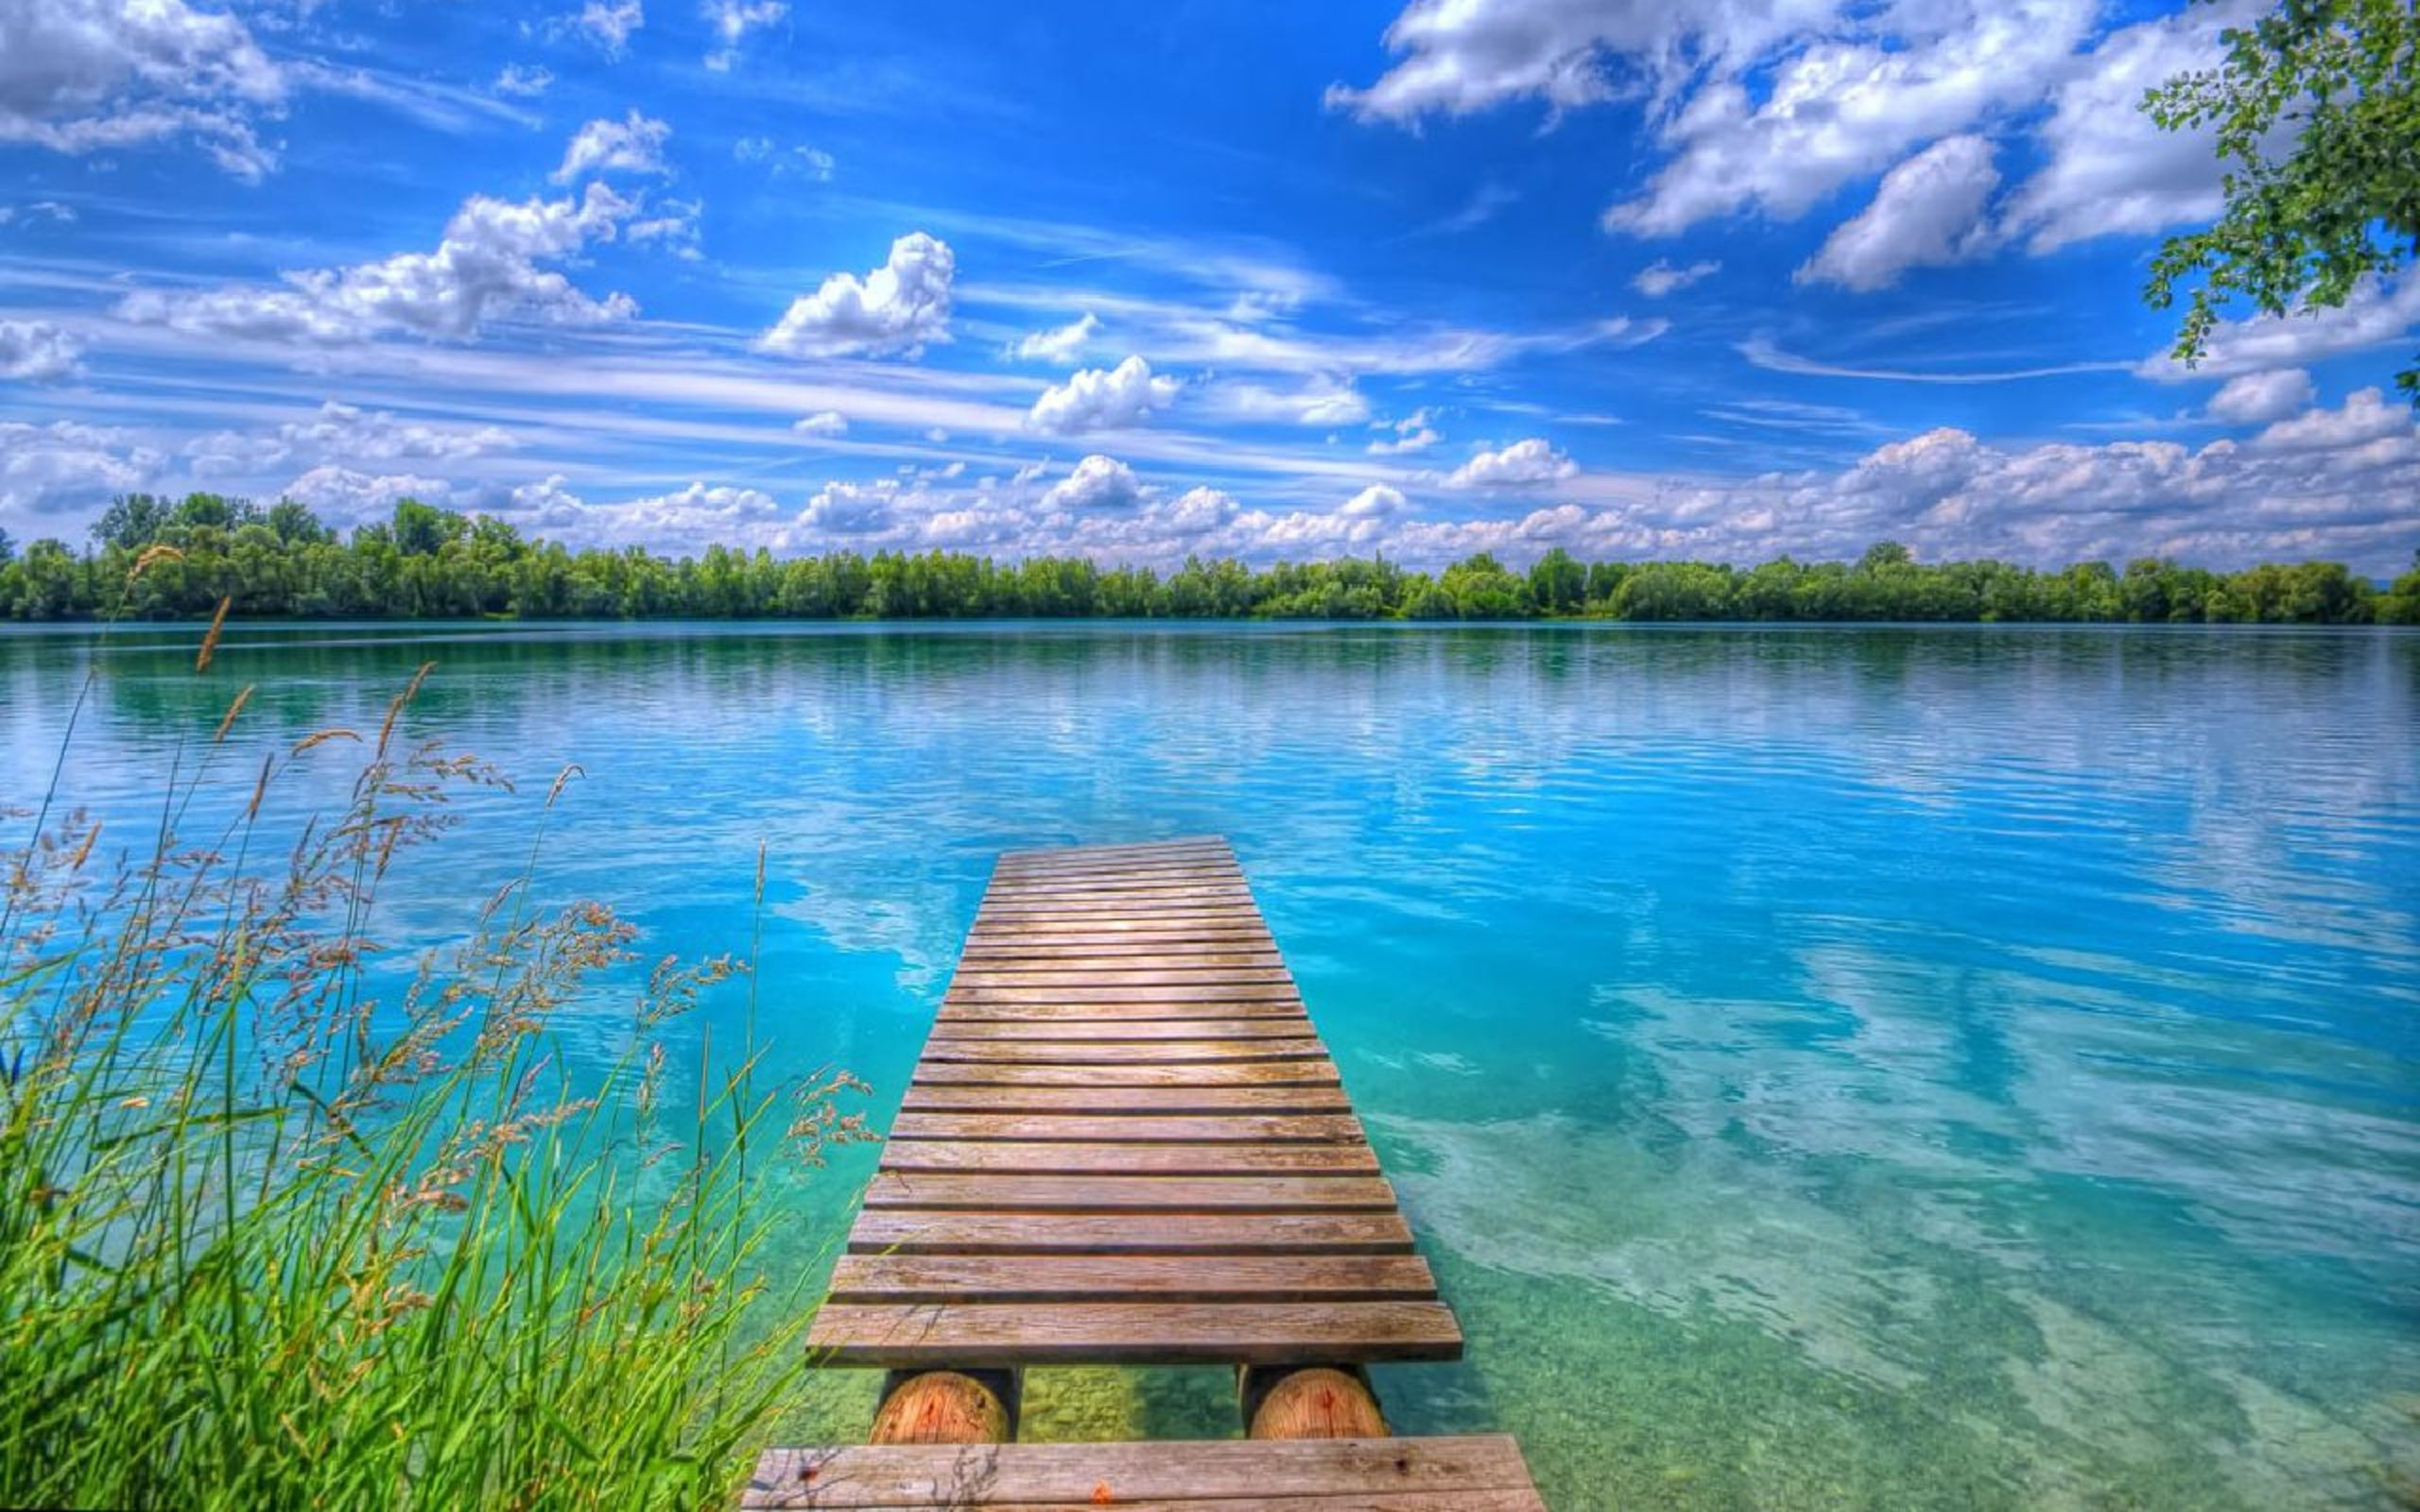 Hd Christmas Wallpapers 1080p Background Beautiful Nature Lake Blue Sky With White